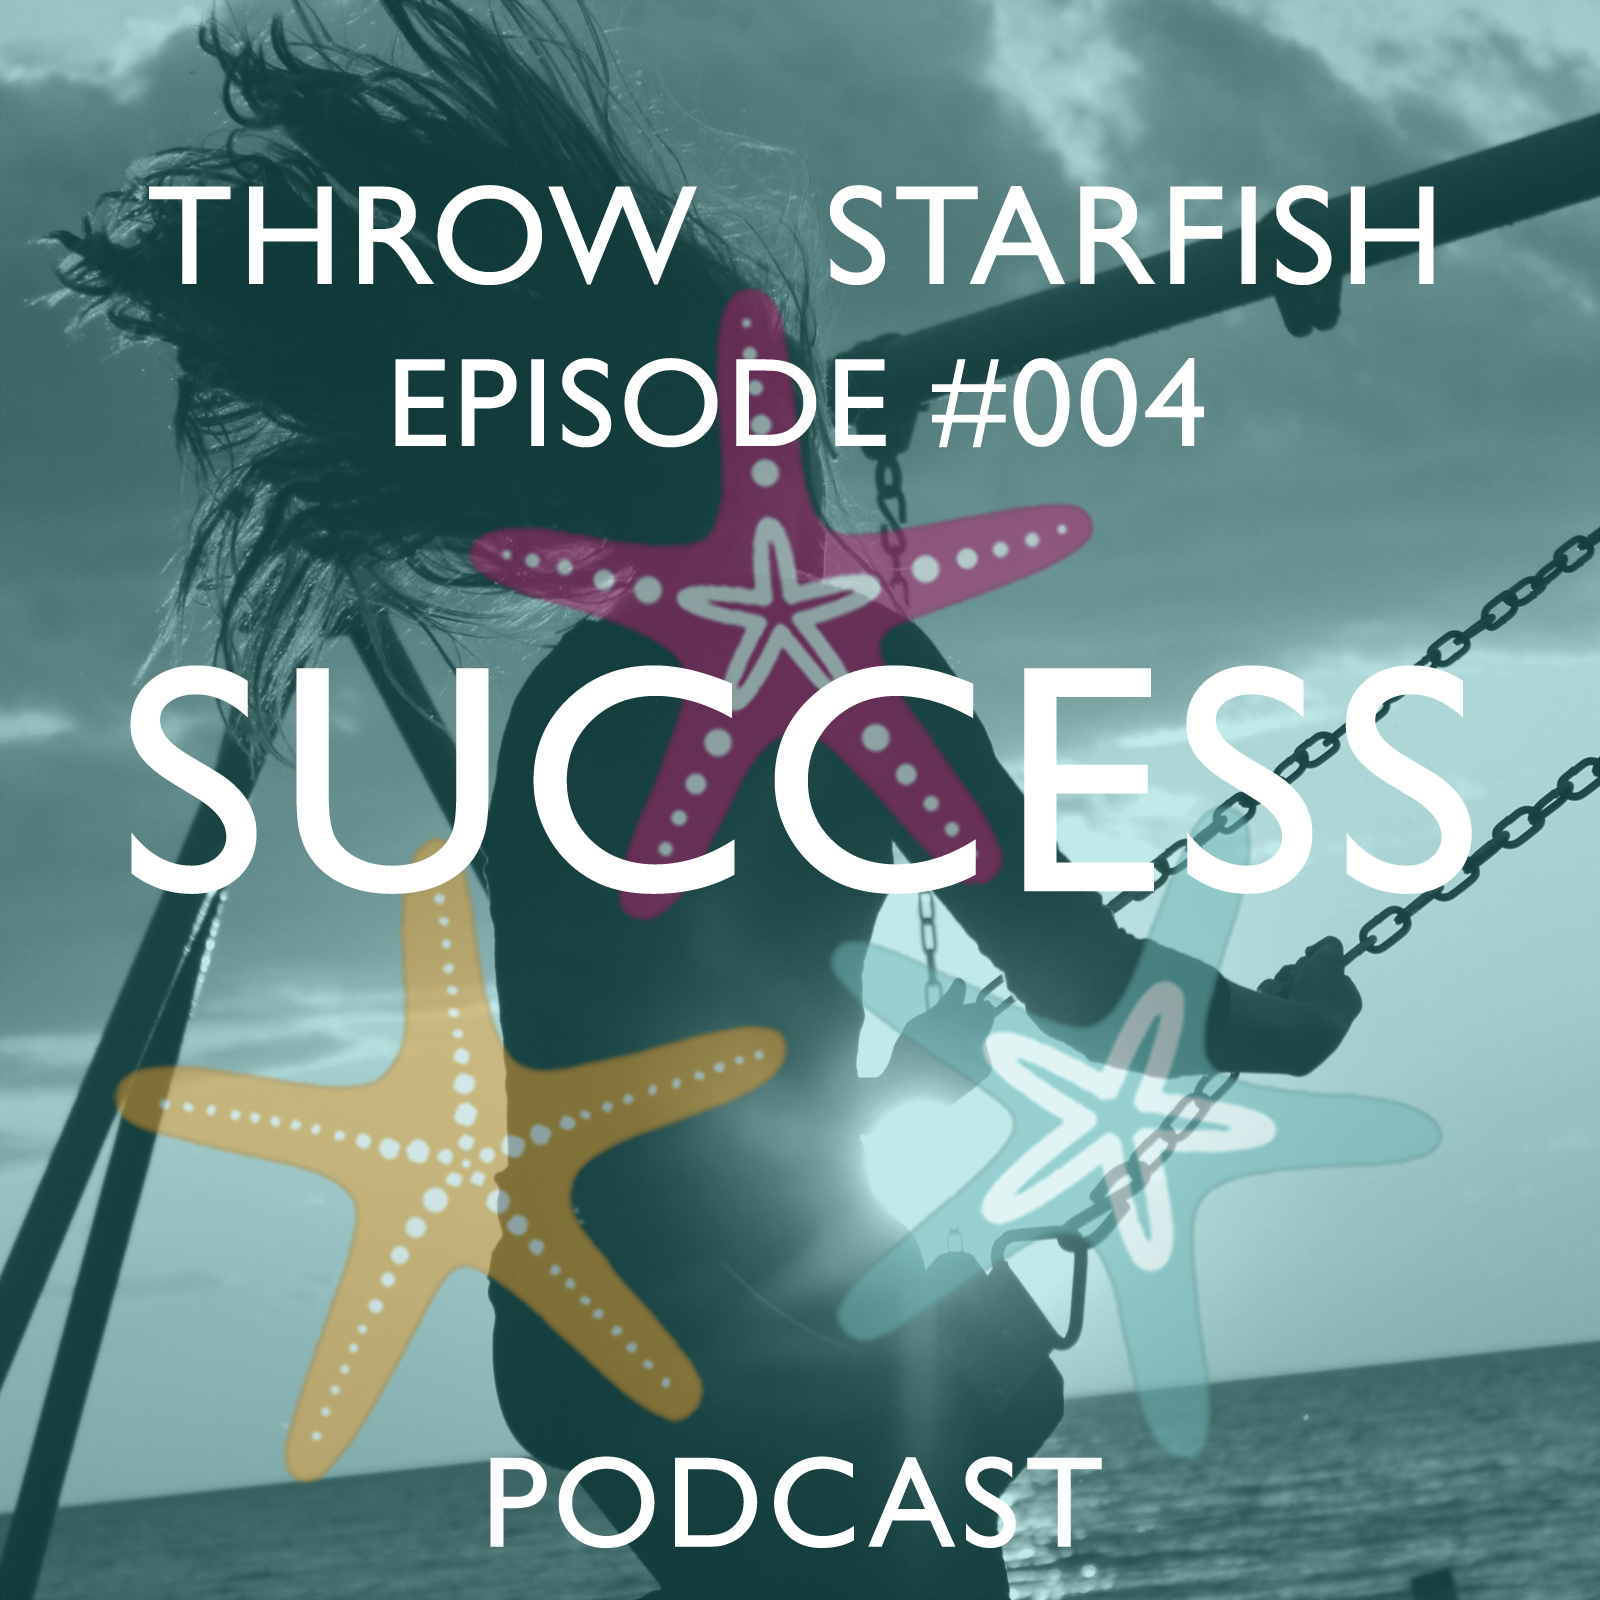 Click on the image to listen to our Podcast on Success